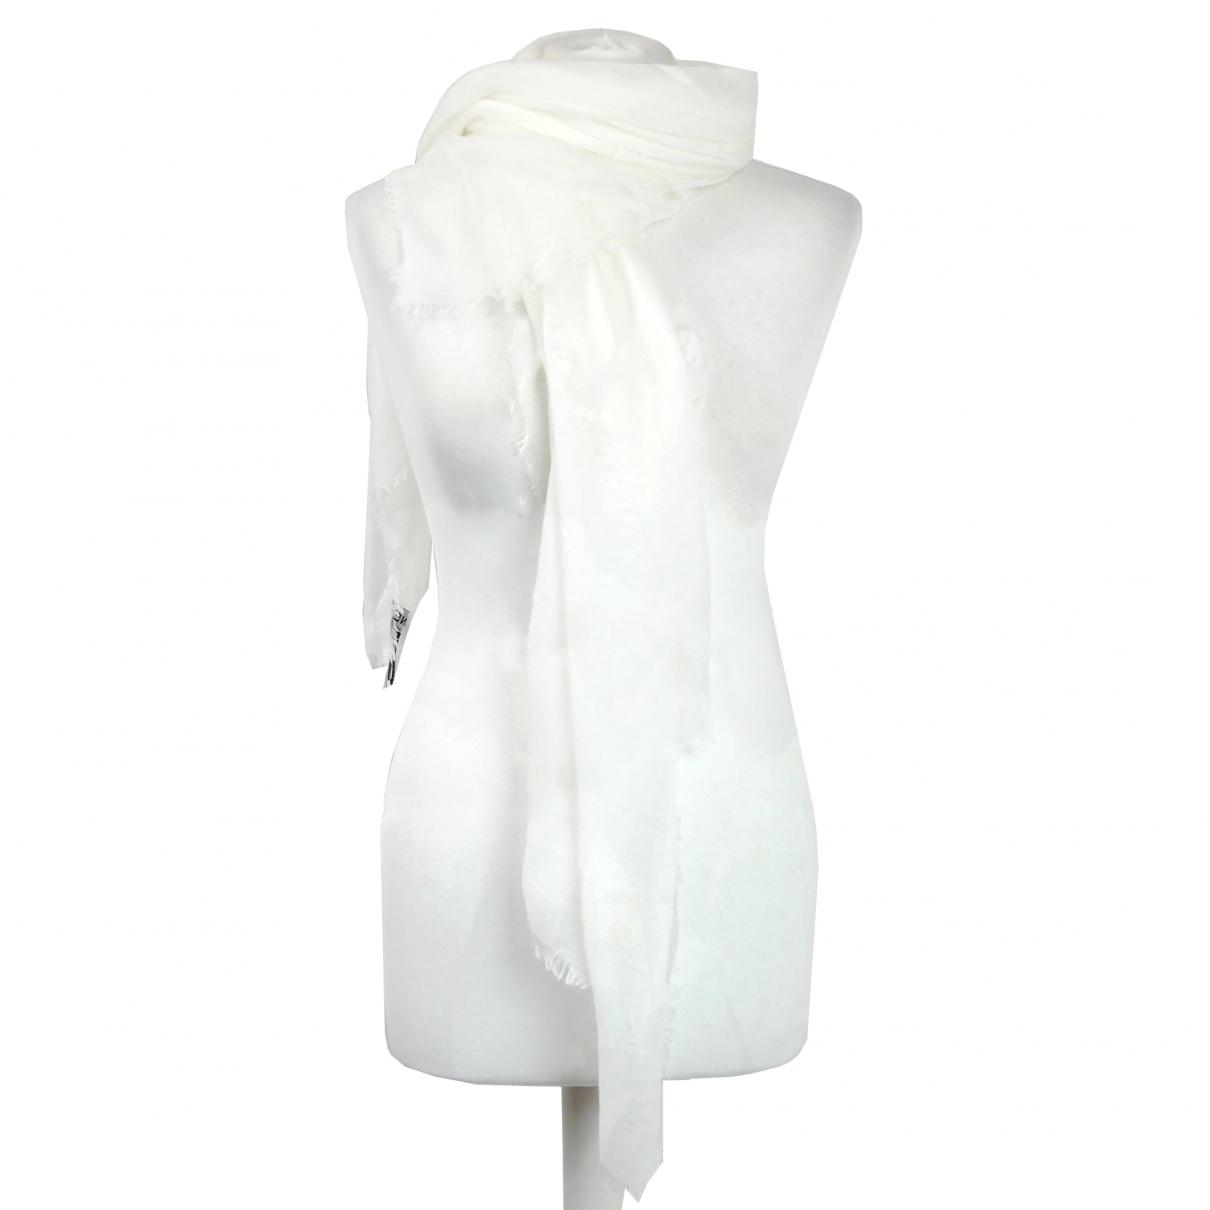 46d7b517a6d Chanel. Women s White Cashmere Scarves.  283 From Vestiaire Collective